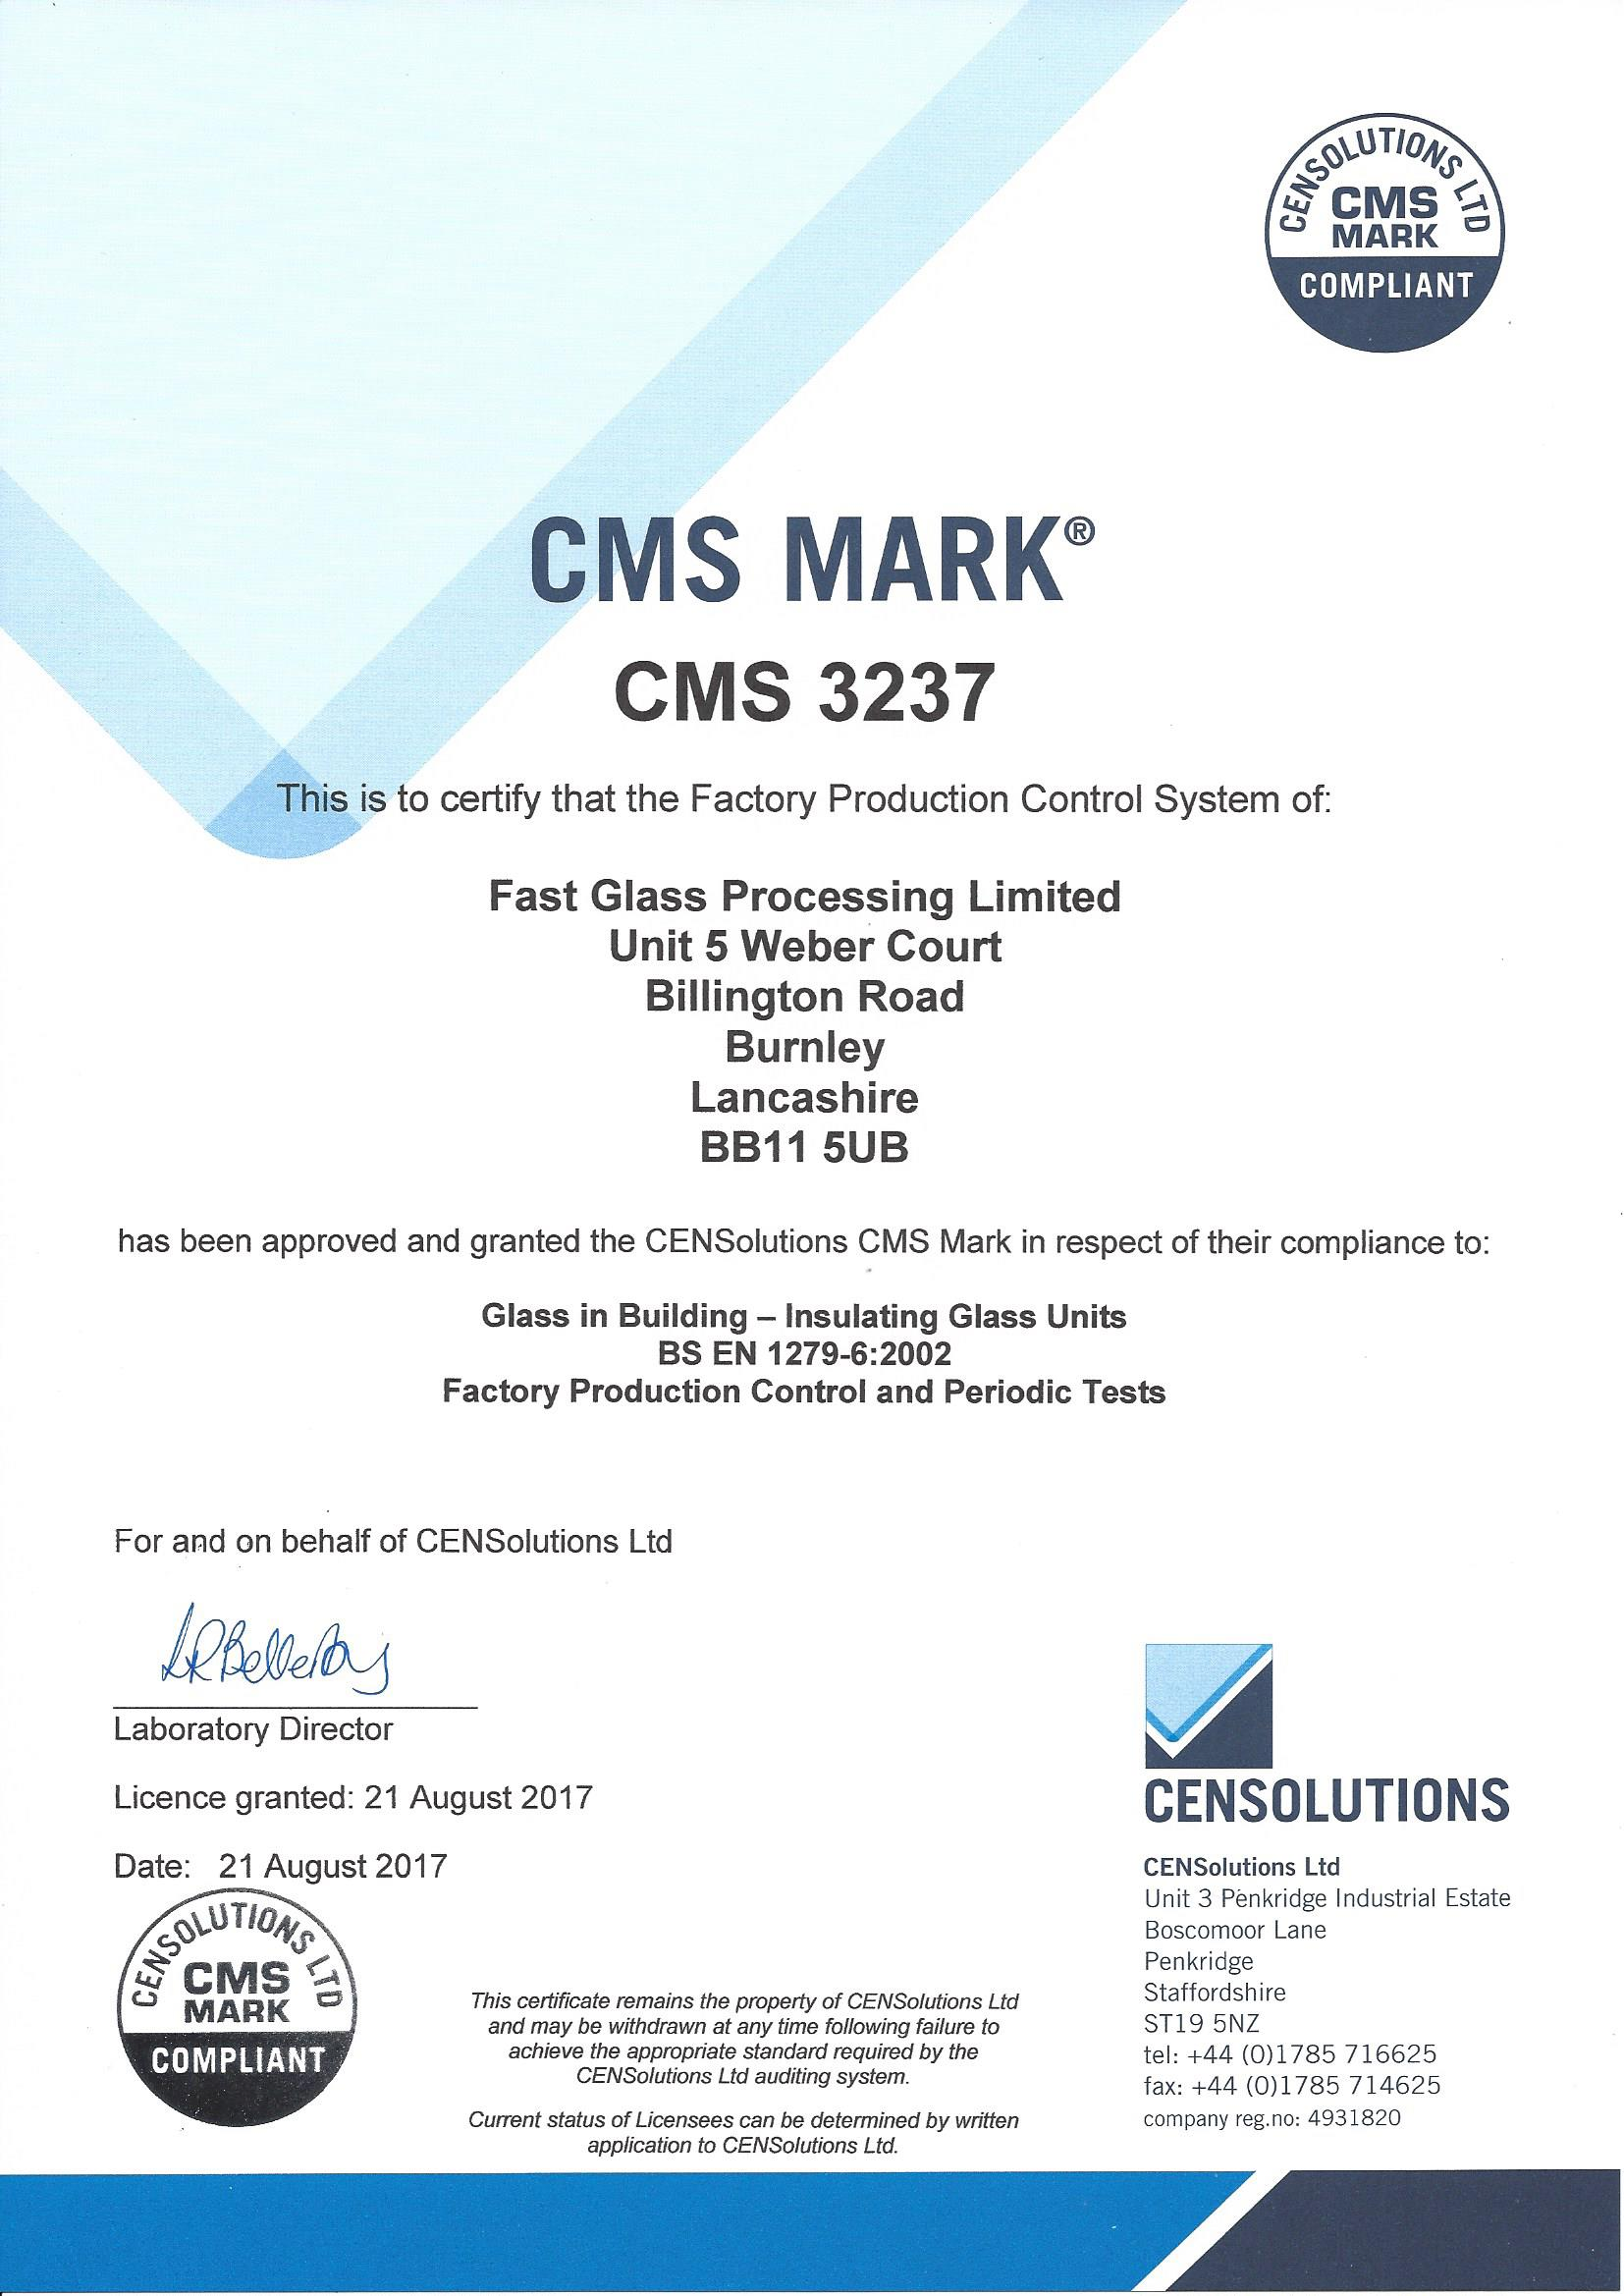 CMS 3237 Certificate - Fast Glass Processing Ltd[1]